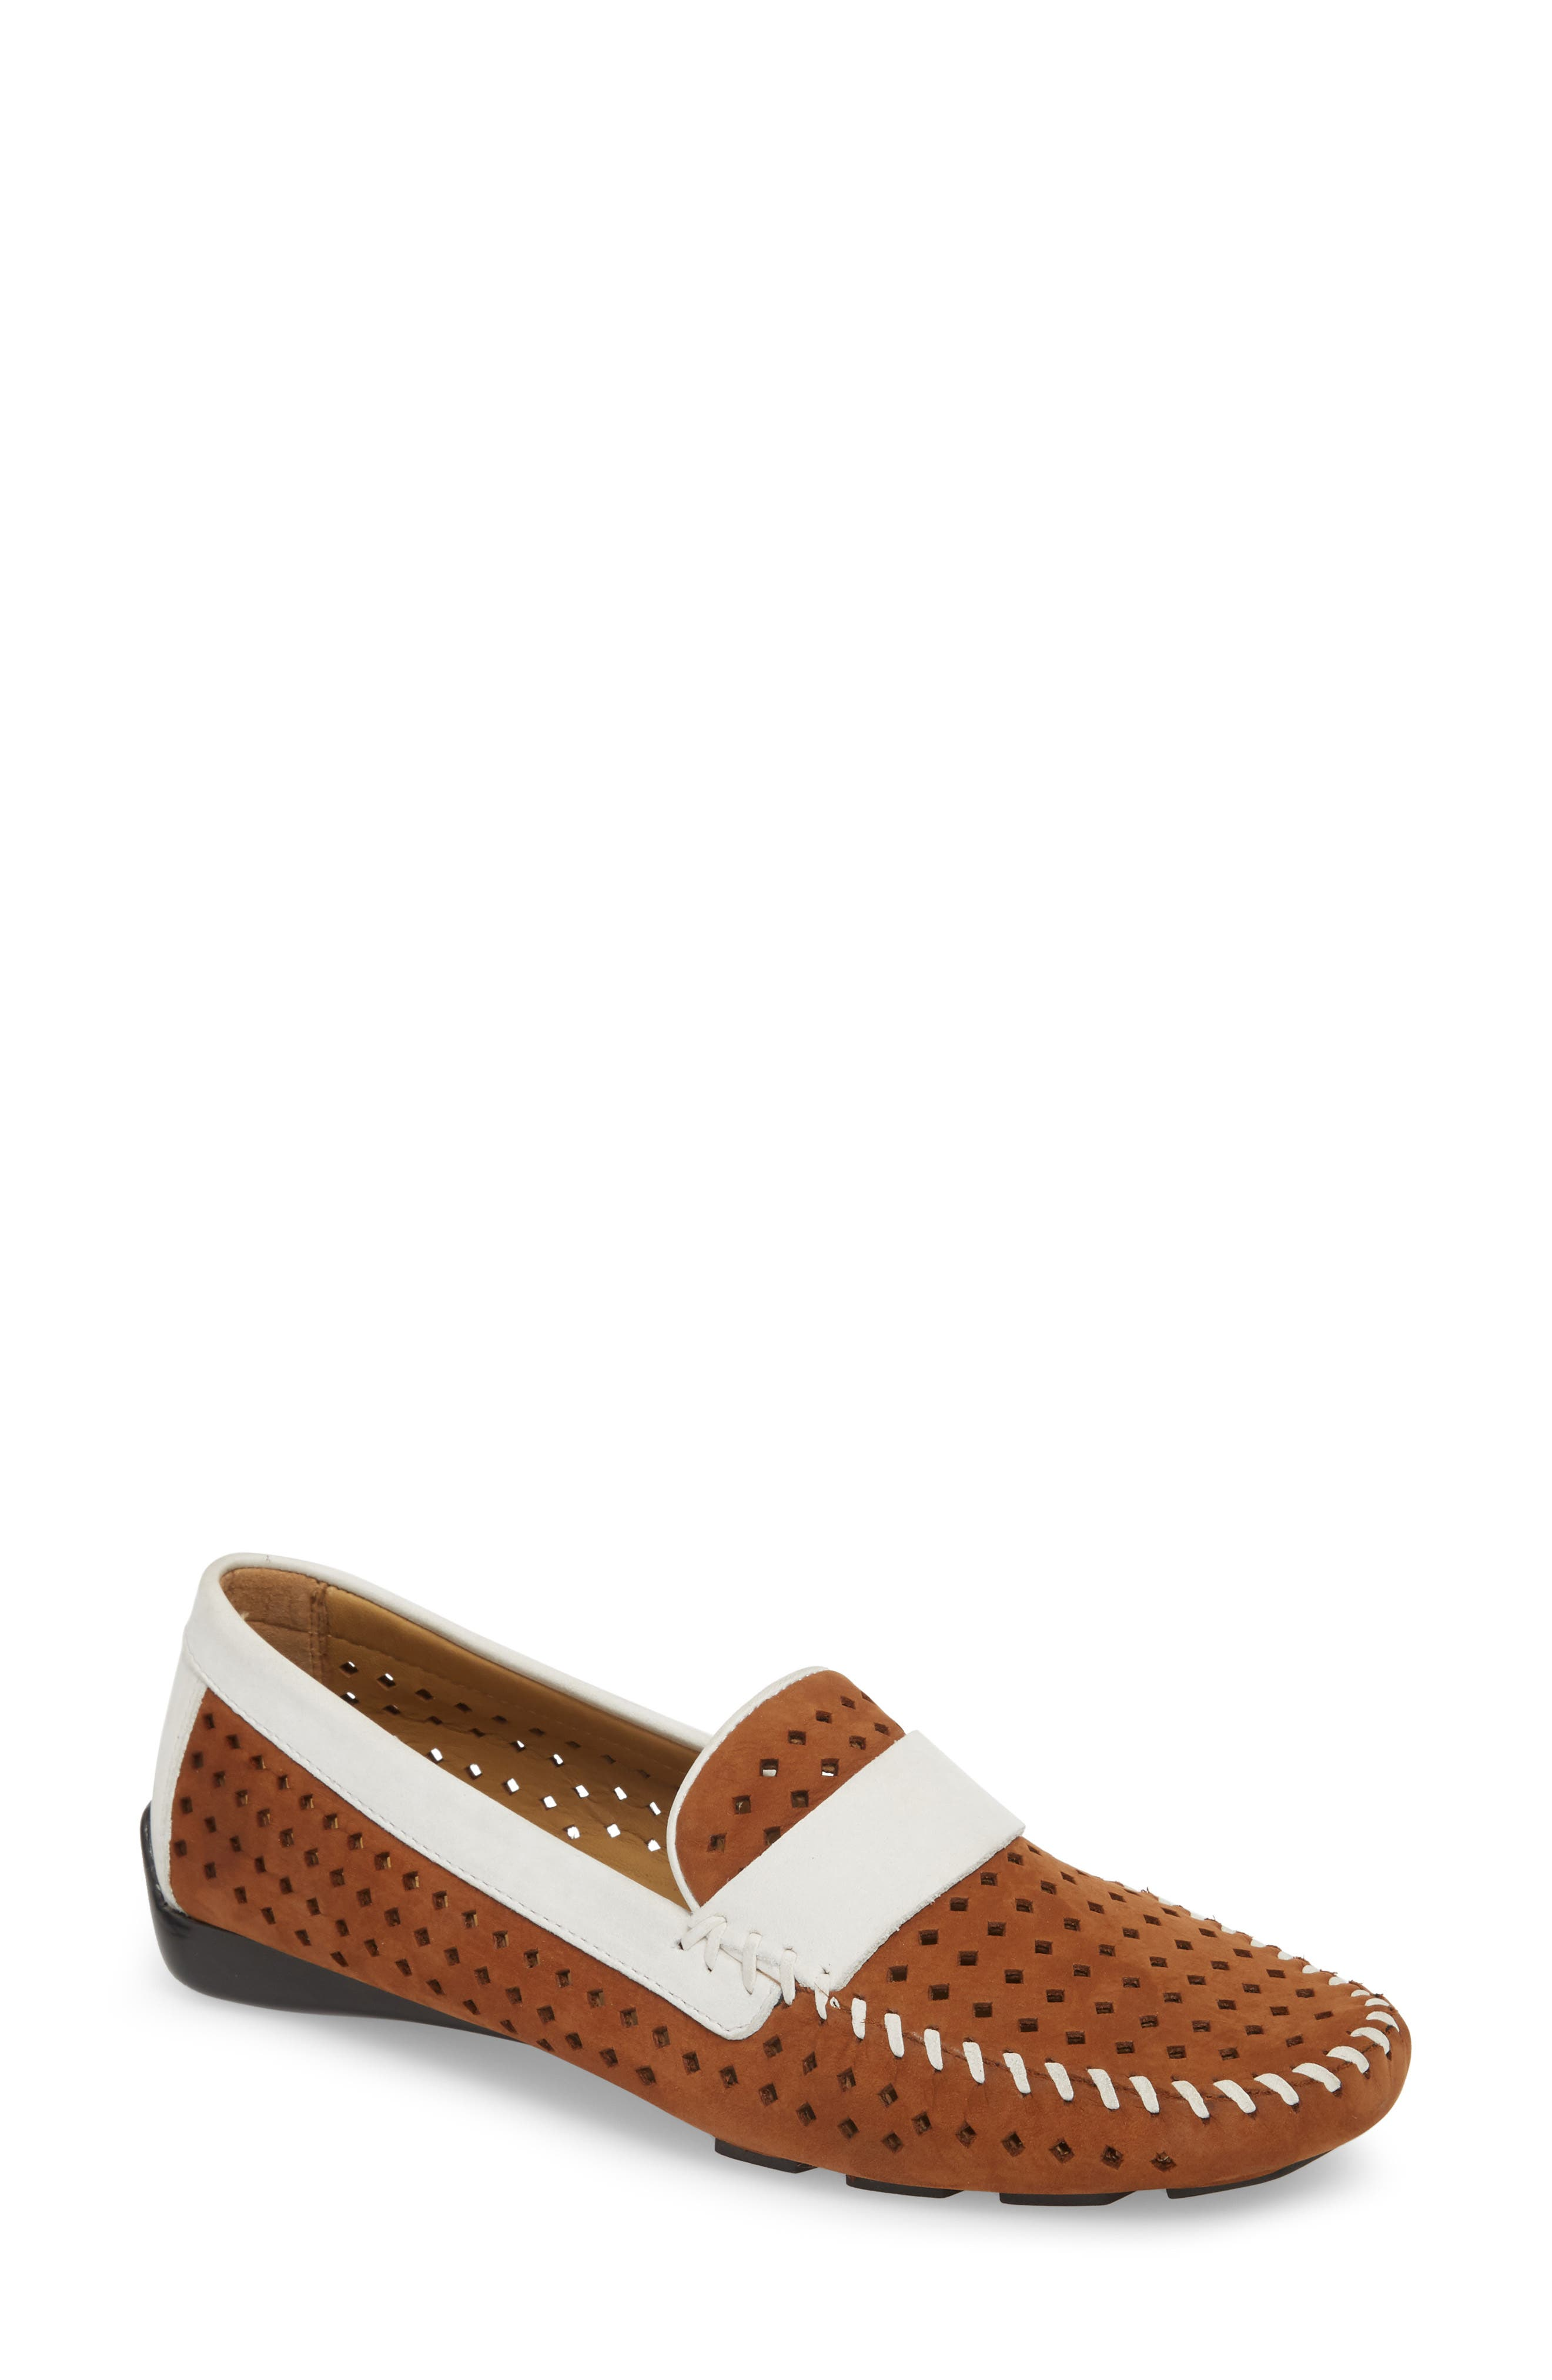 Pace Loafer,                         Main,                         color, TAN/ WHITE NUBUCK